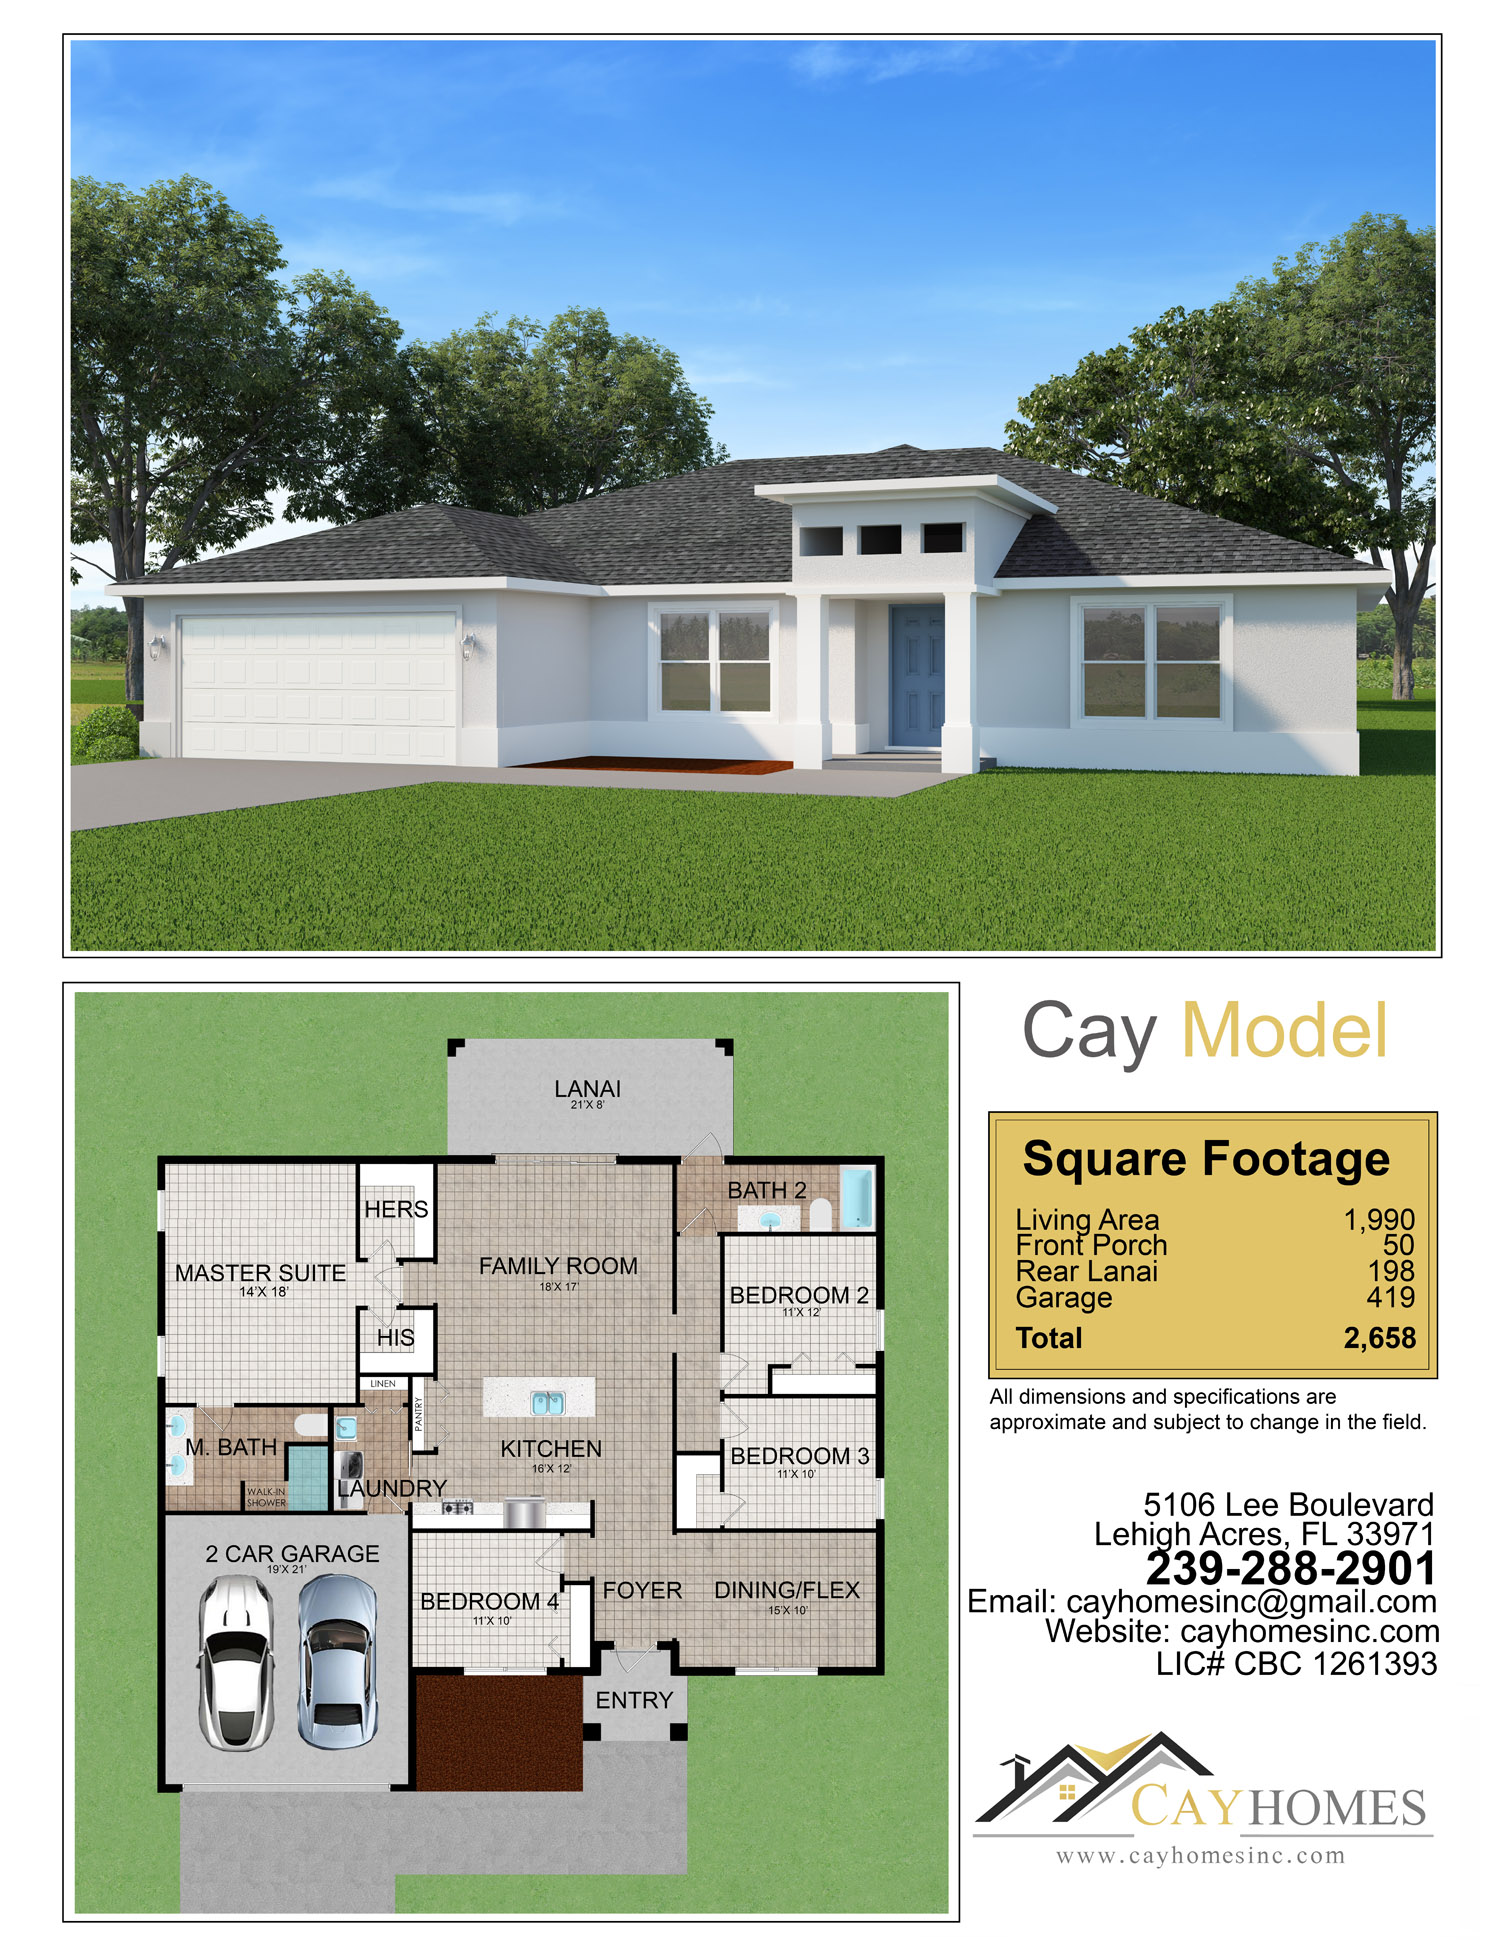 Cay Model by Cay Homes